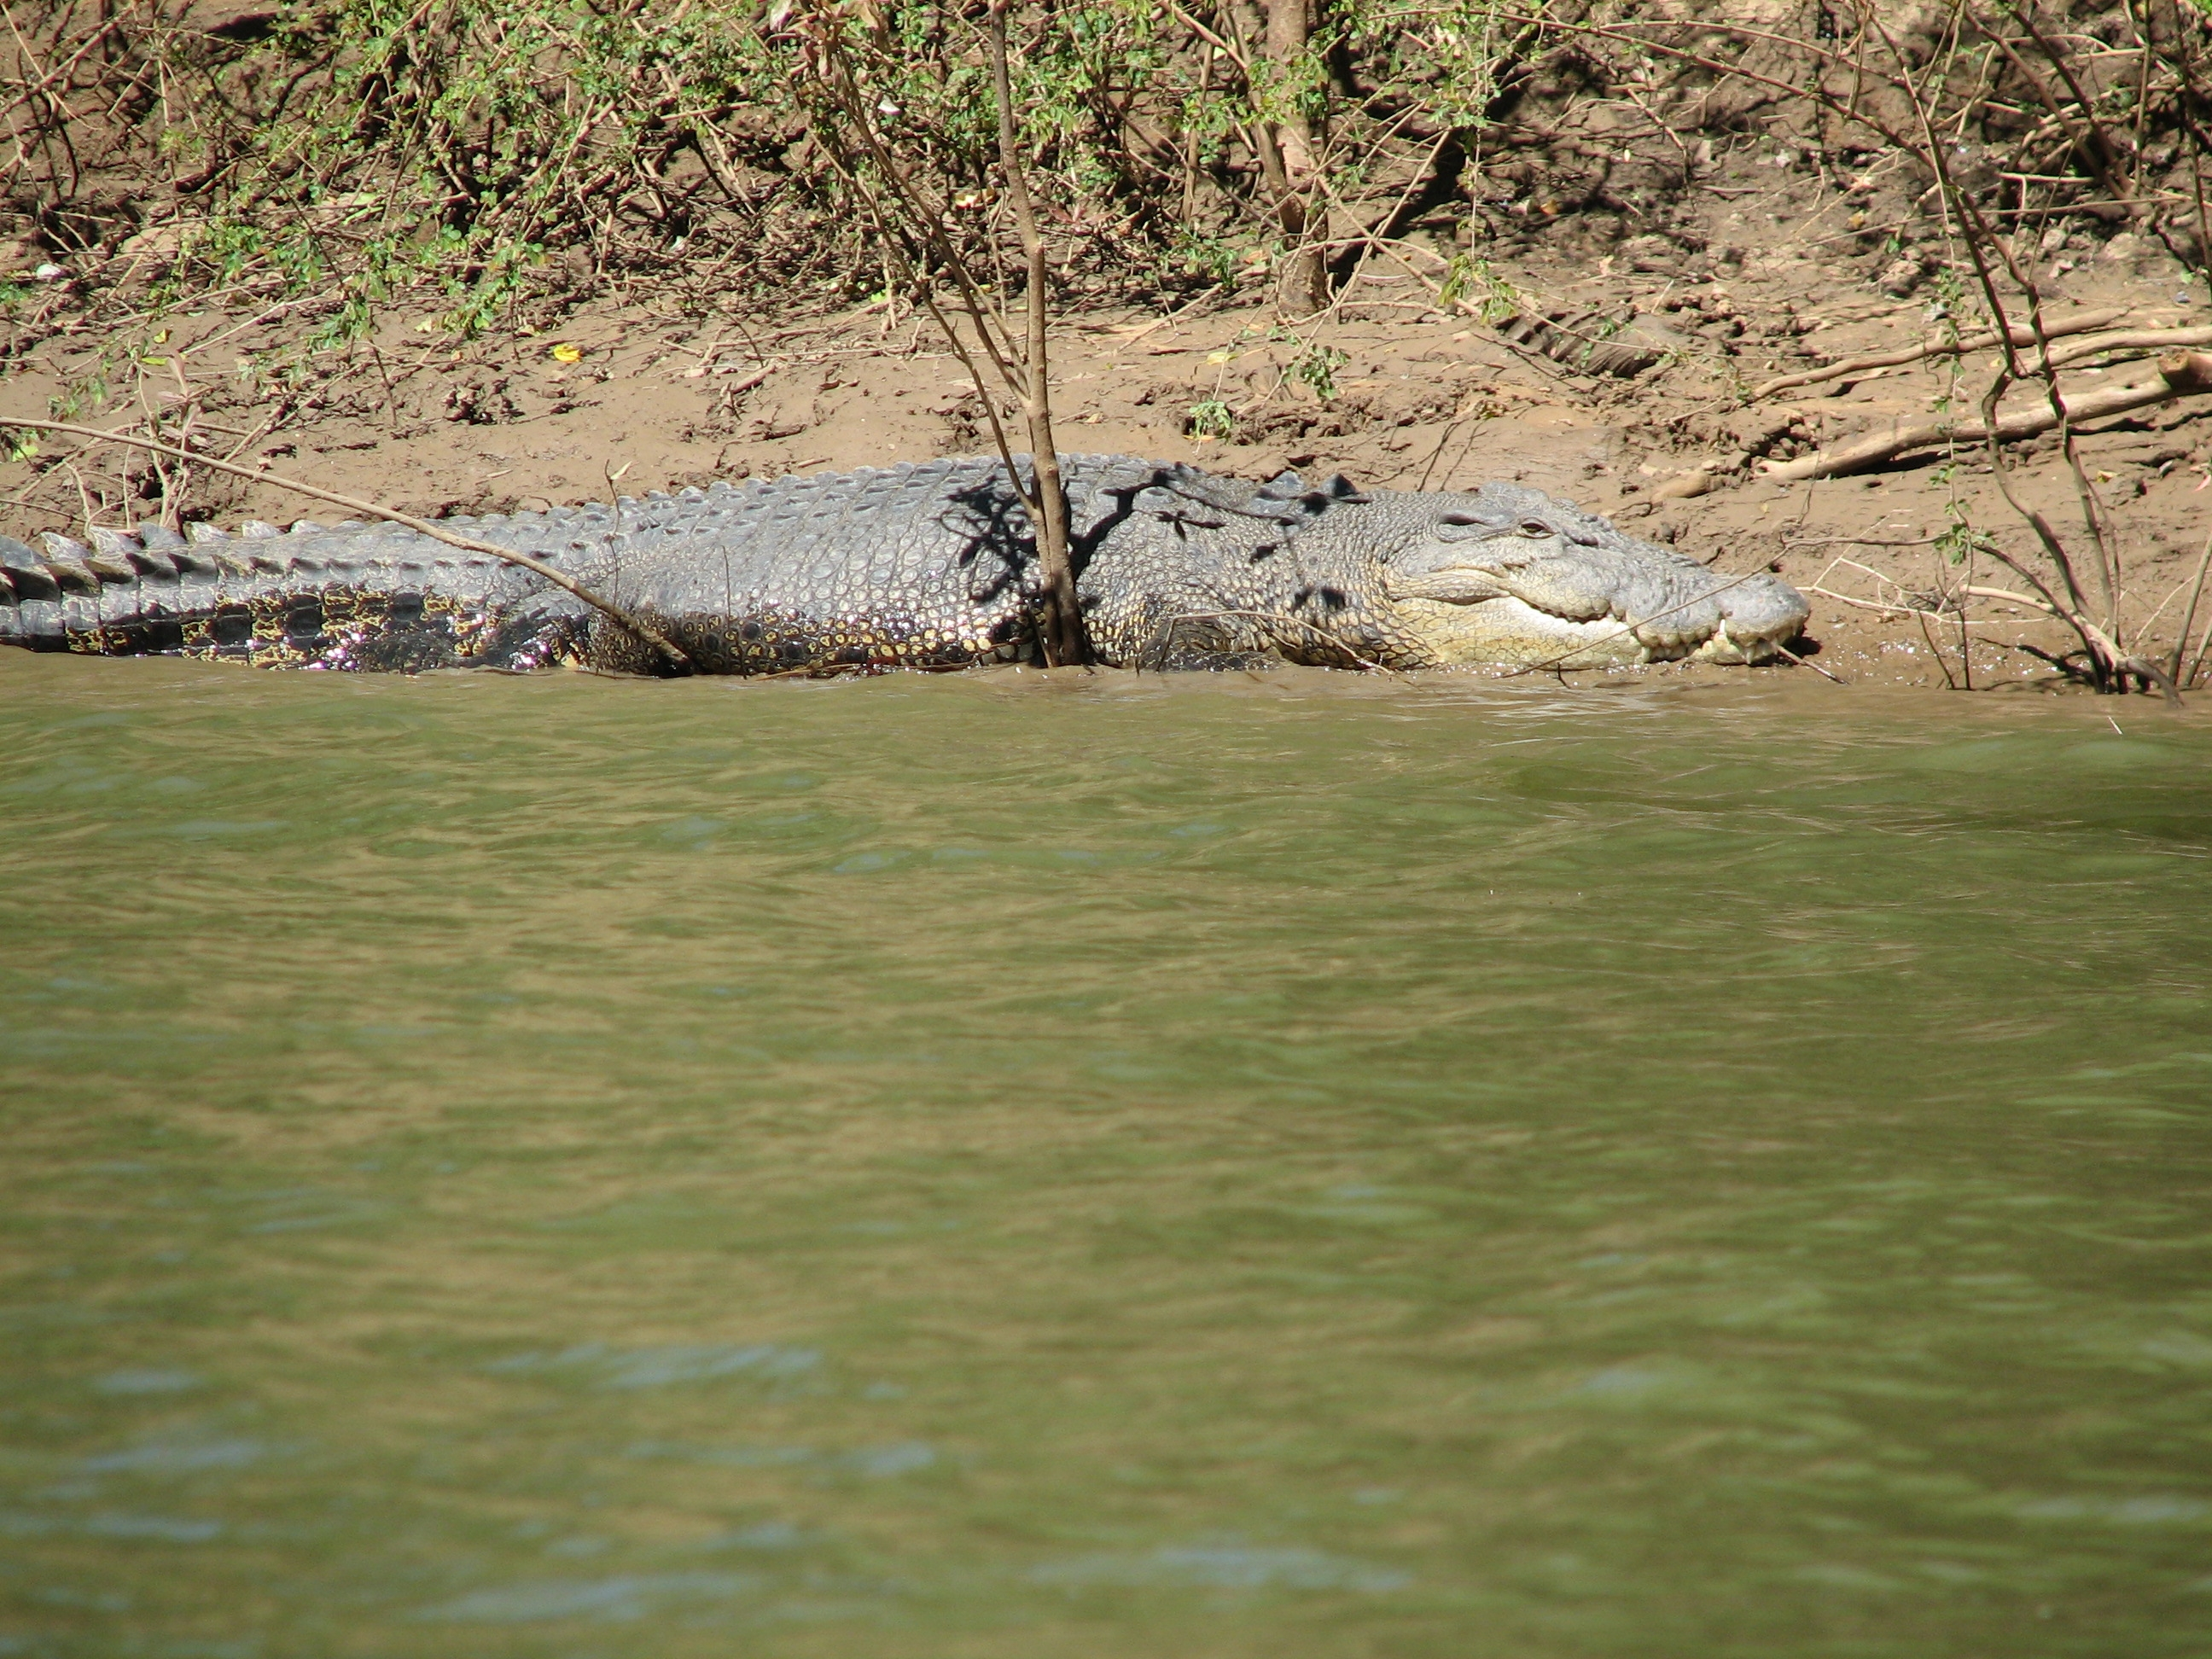 Croc Daly River 21